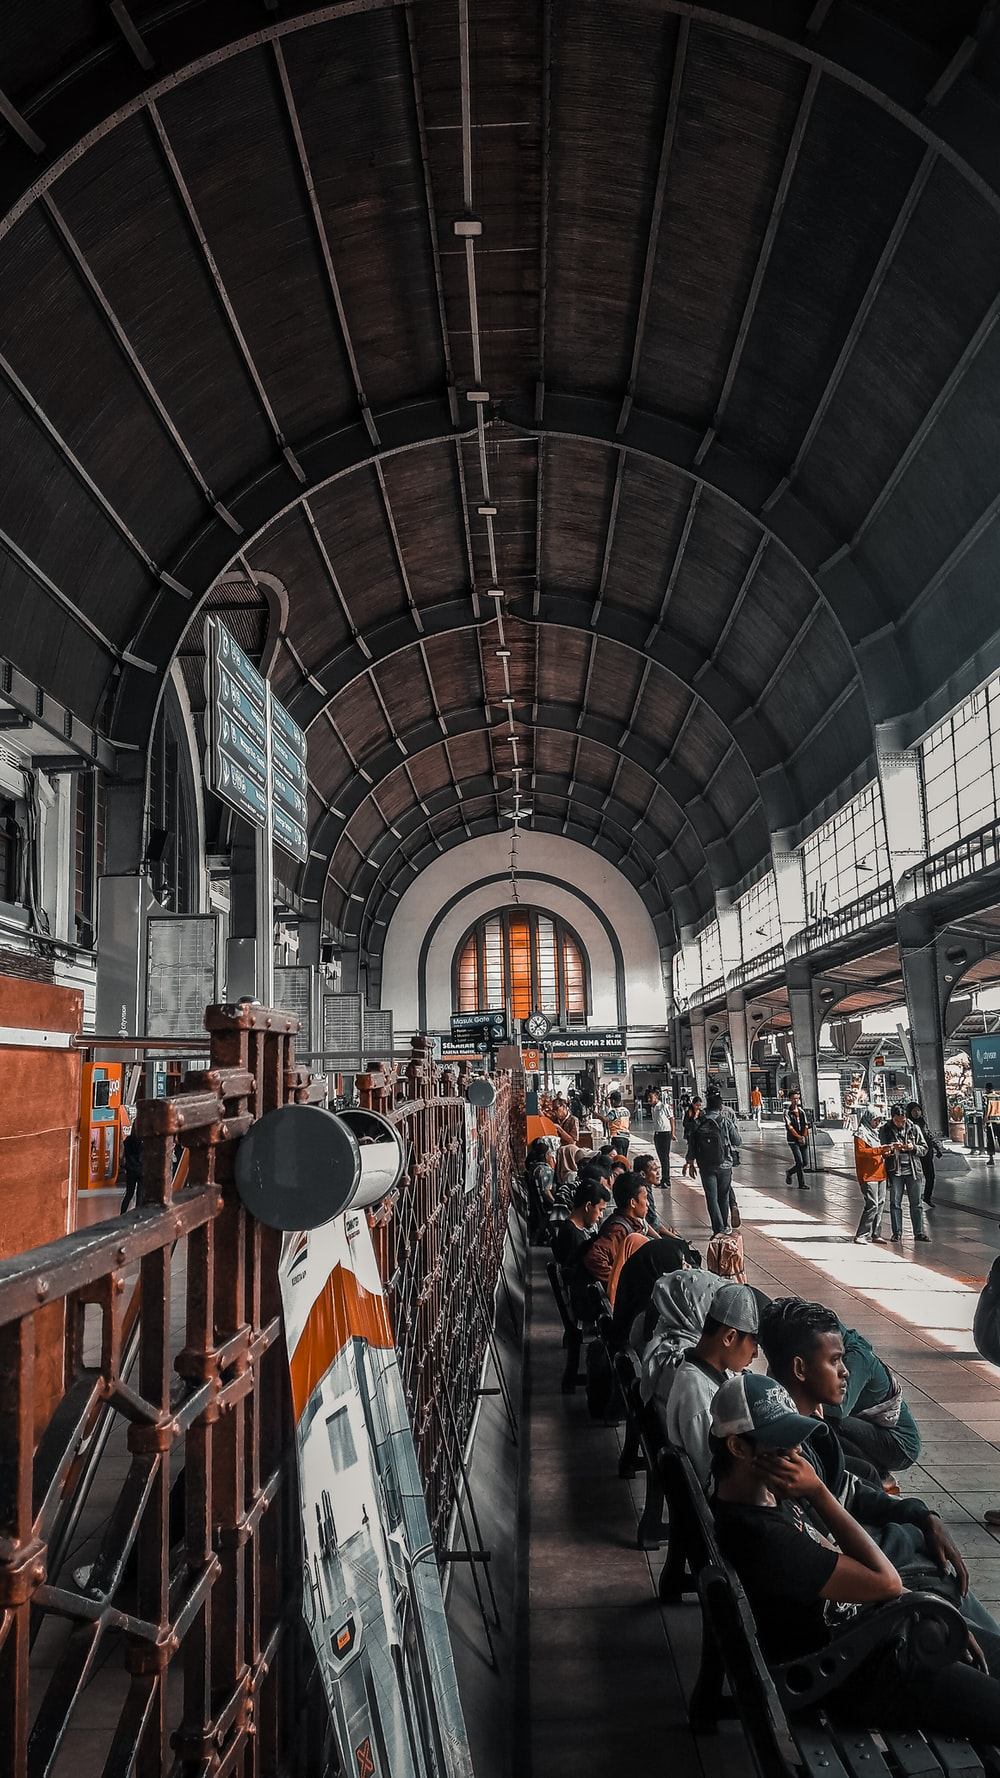 people sitting inside train station during daytime